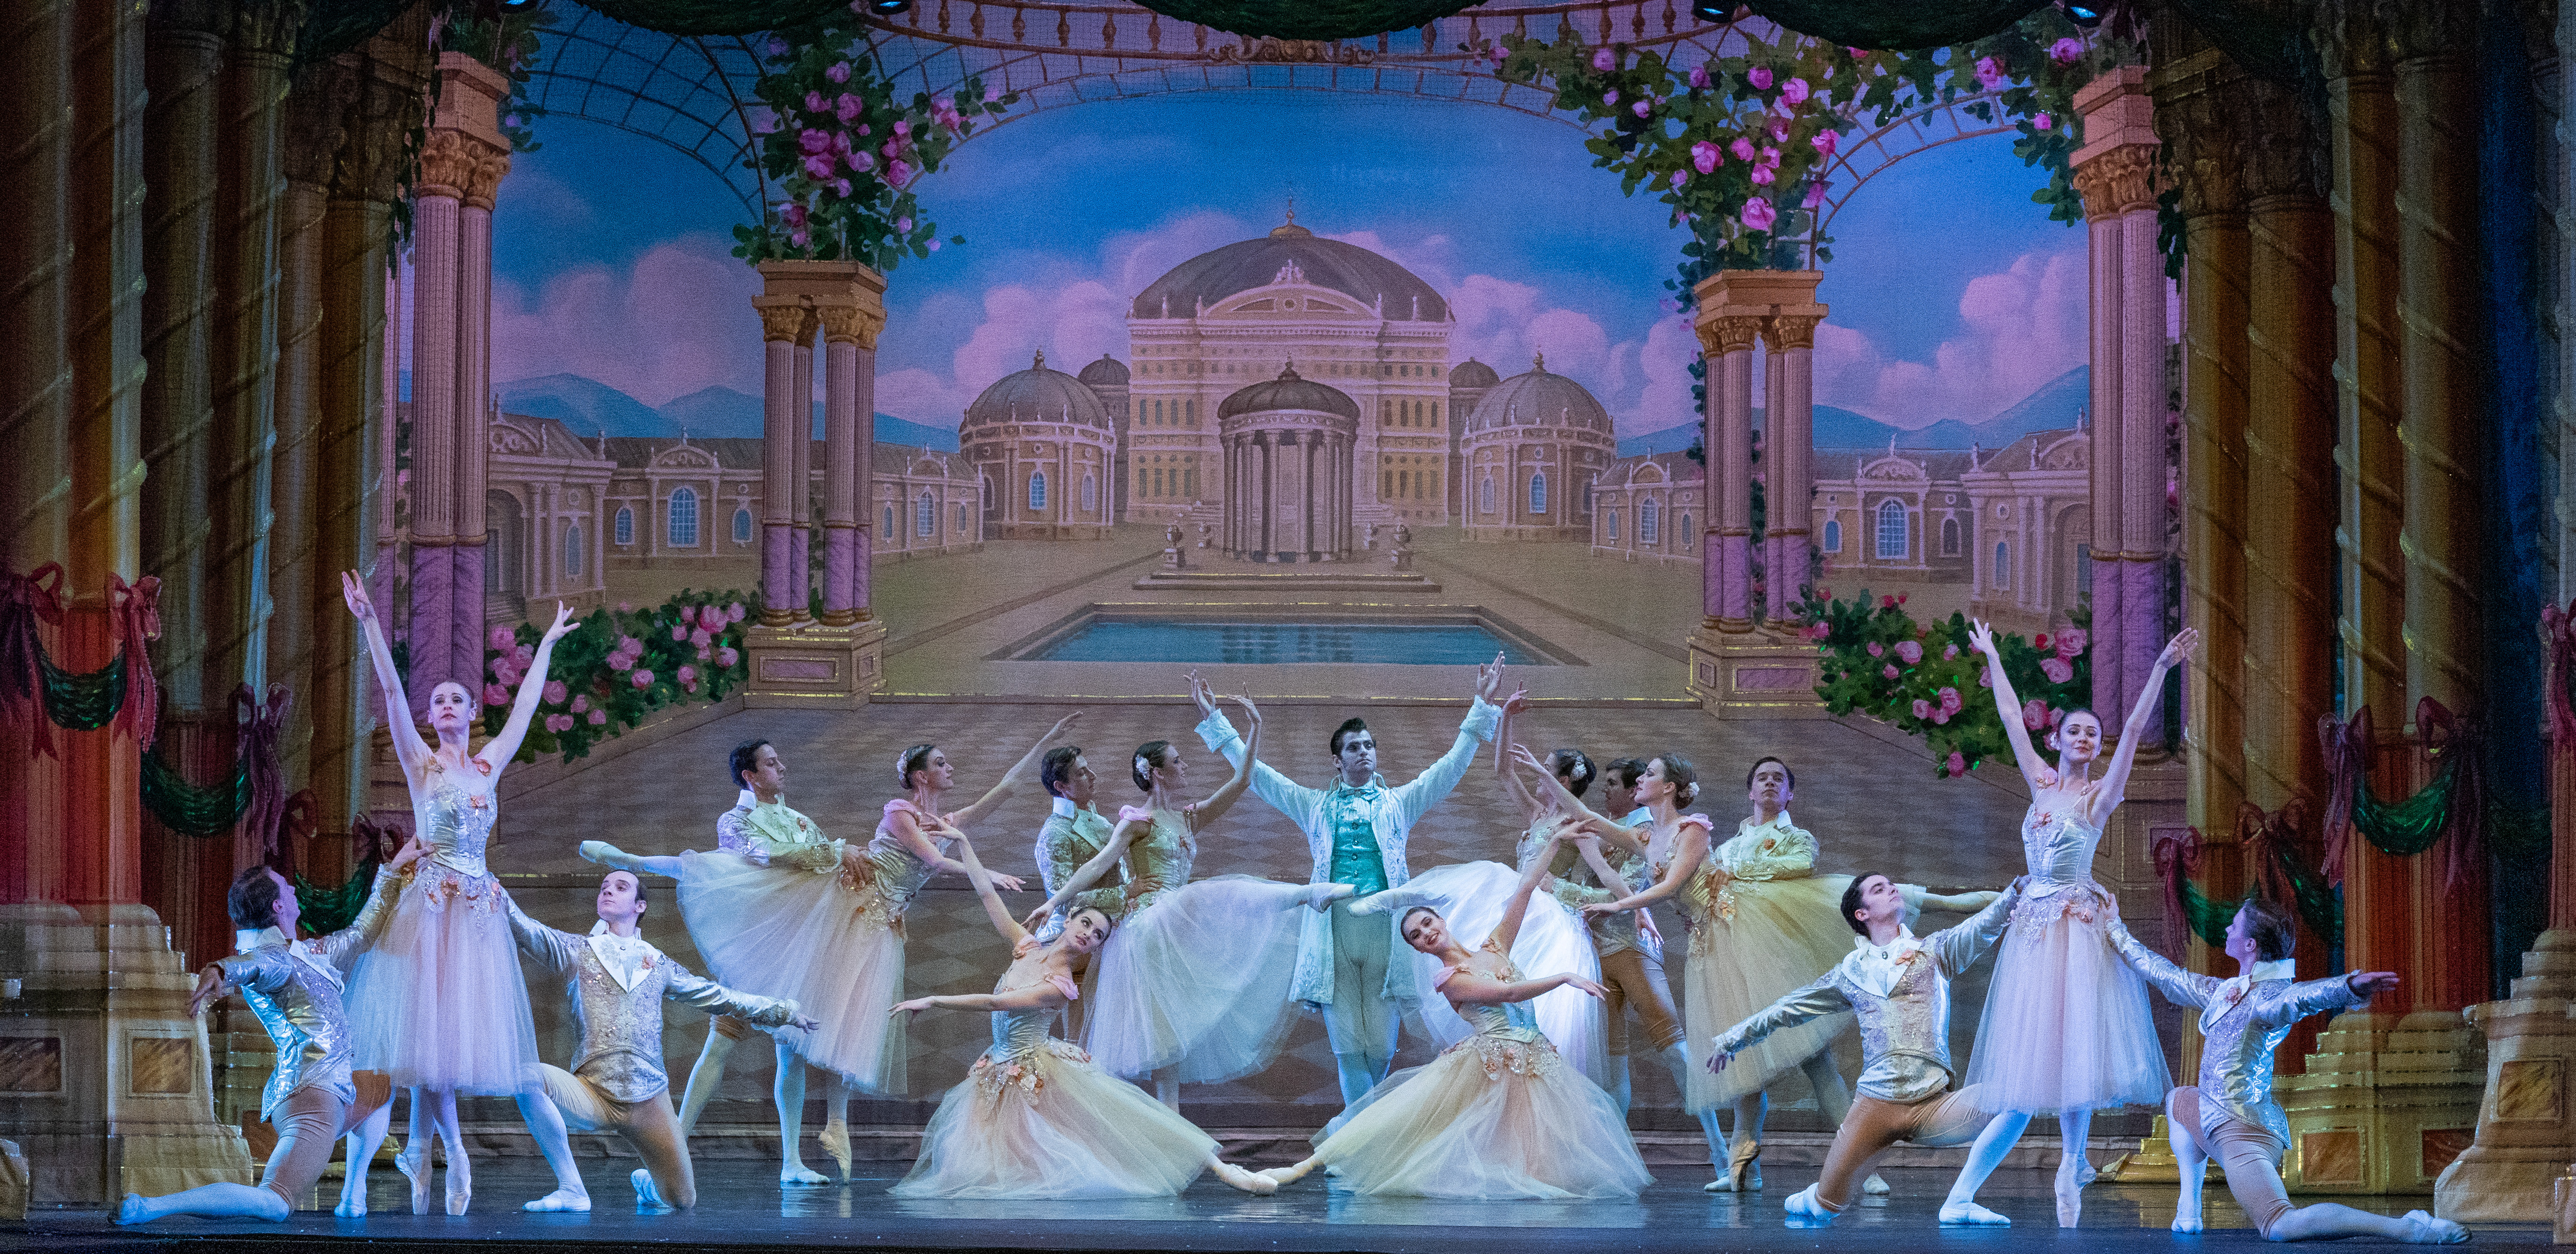 Moscow Ballet's Waltz of the Roses in the Great Russian Nutcracker